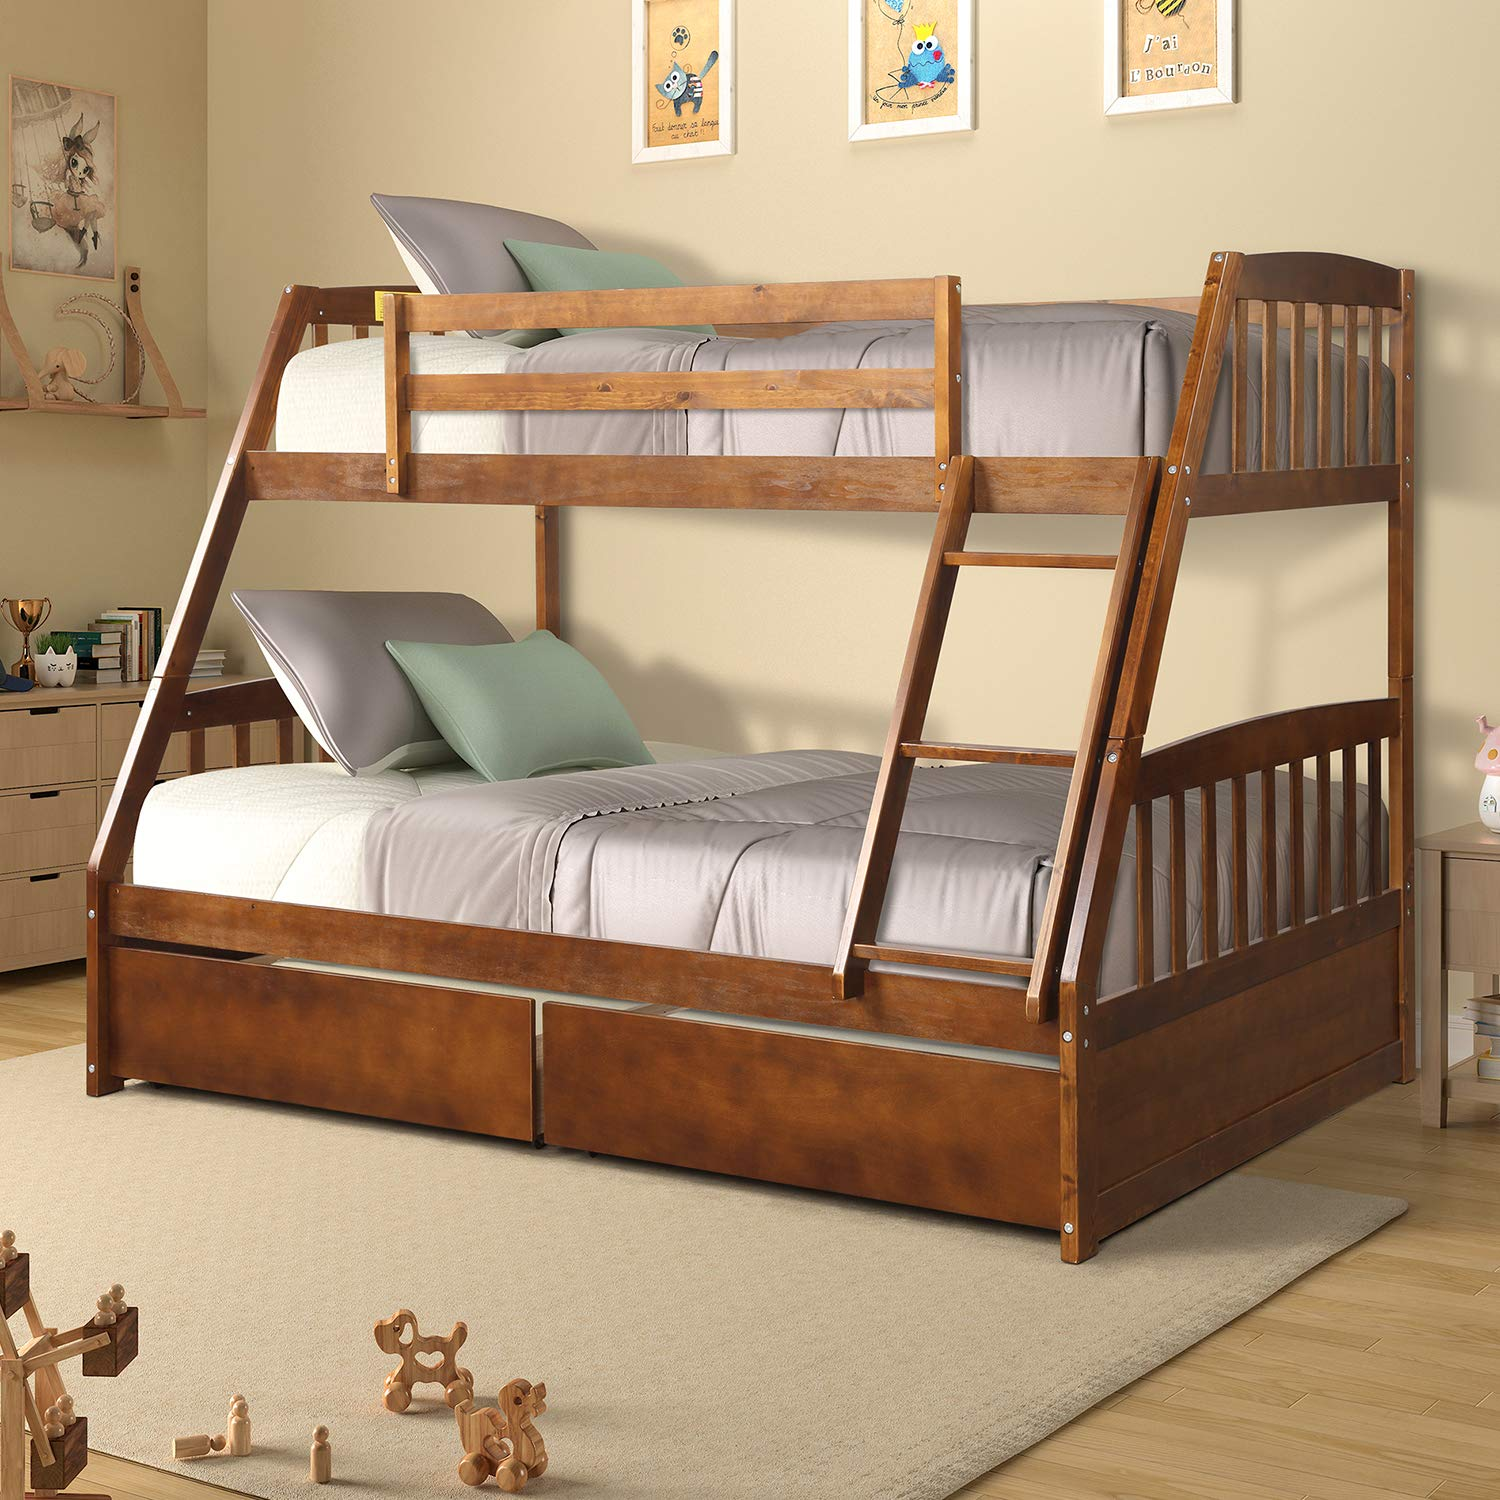 Hinpia Solid Wood Twin Over Full Bunk Bed with 2 Under Bed Storage Drawers, Safety Guard Rail, and Ladder Converts to Separate Beds, for Kids, Teens, Guest Rooms, Walnut